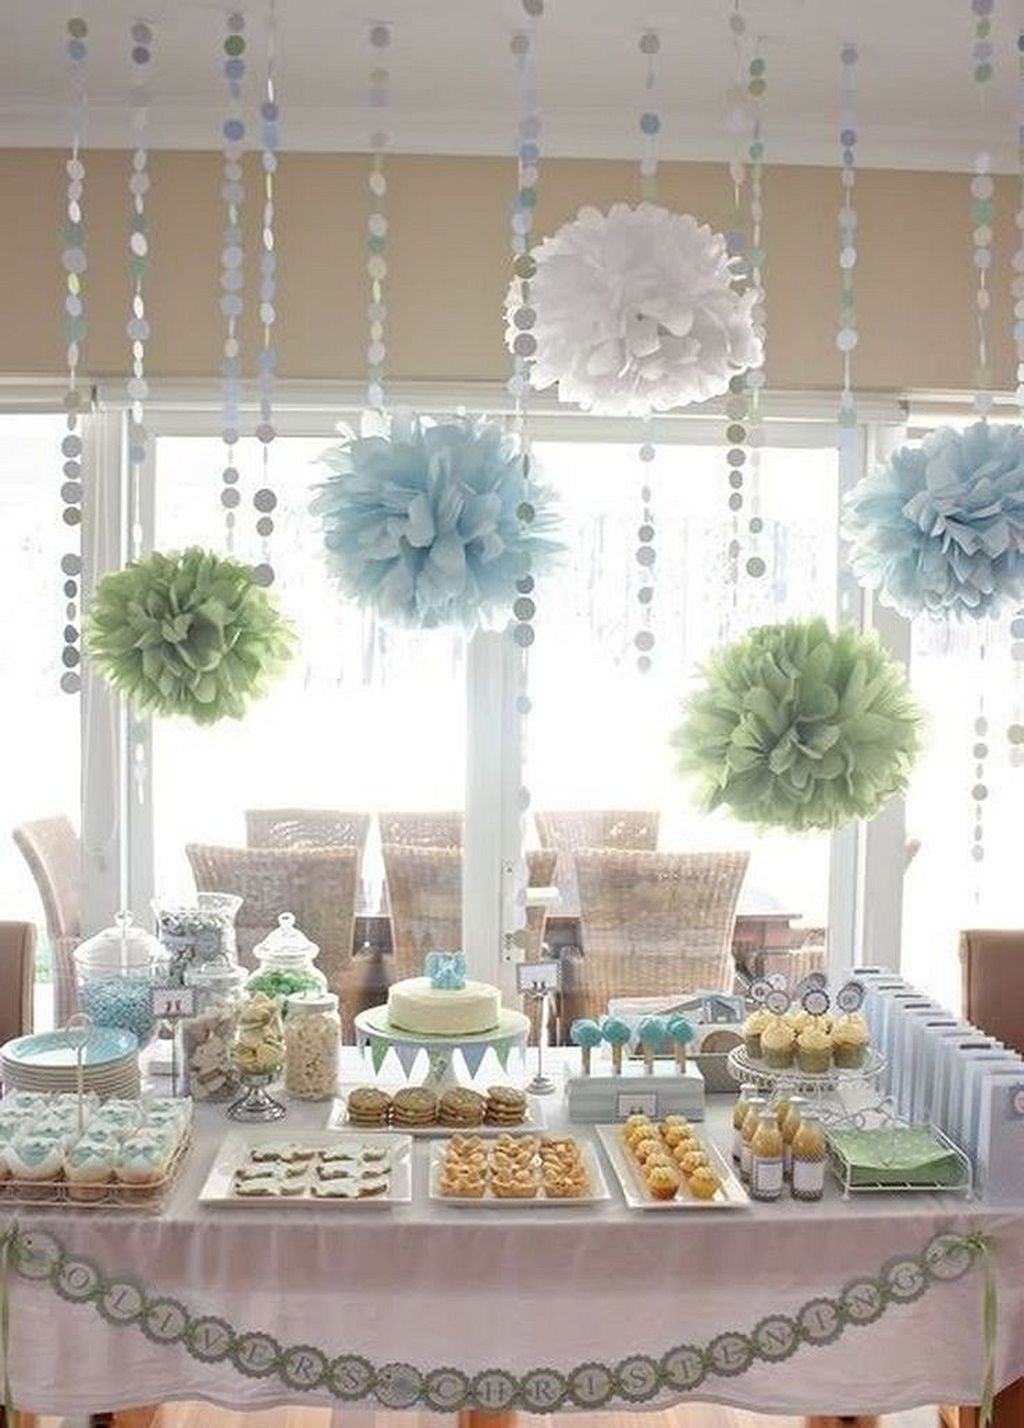 31 Sneak Peek Bridal Shower Ideas 2018 | Bridal showers, Bridal